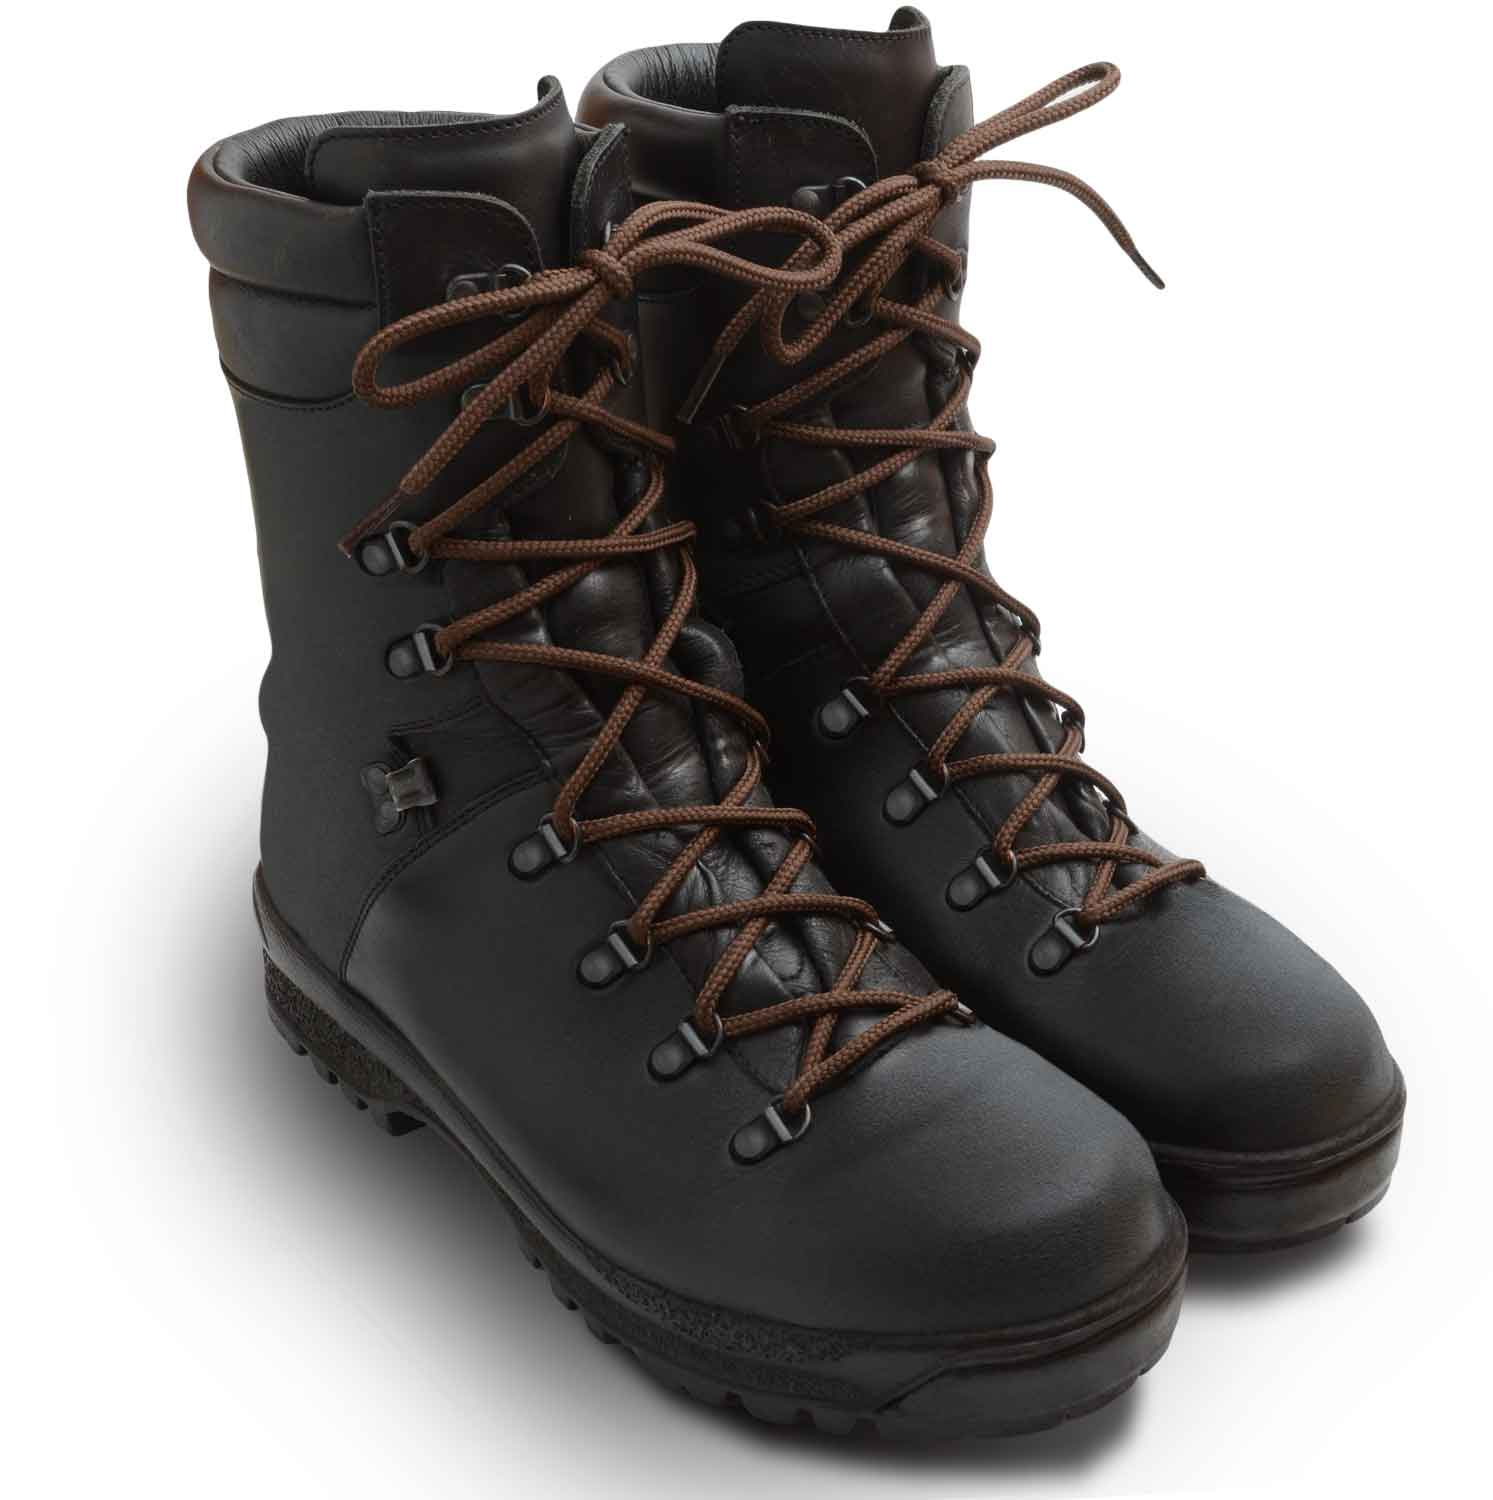 7e287a5c4dd8 8 BEST BOOT LACES THAT ARE DURABLE